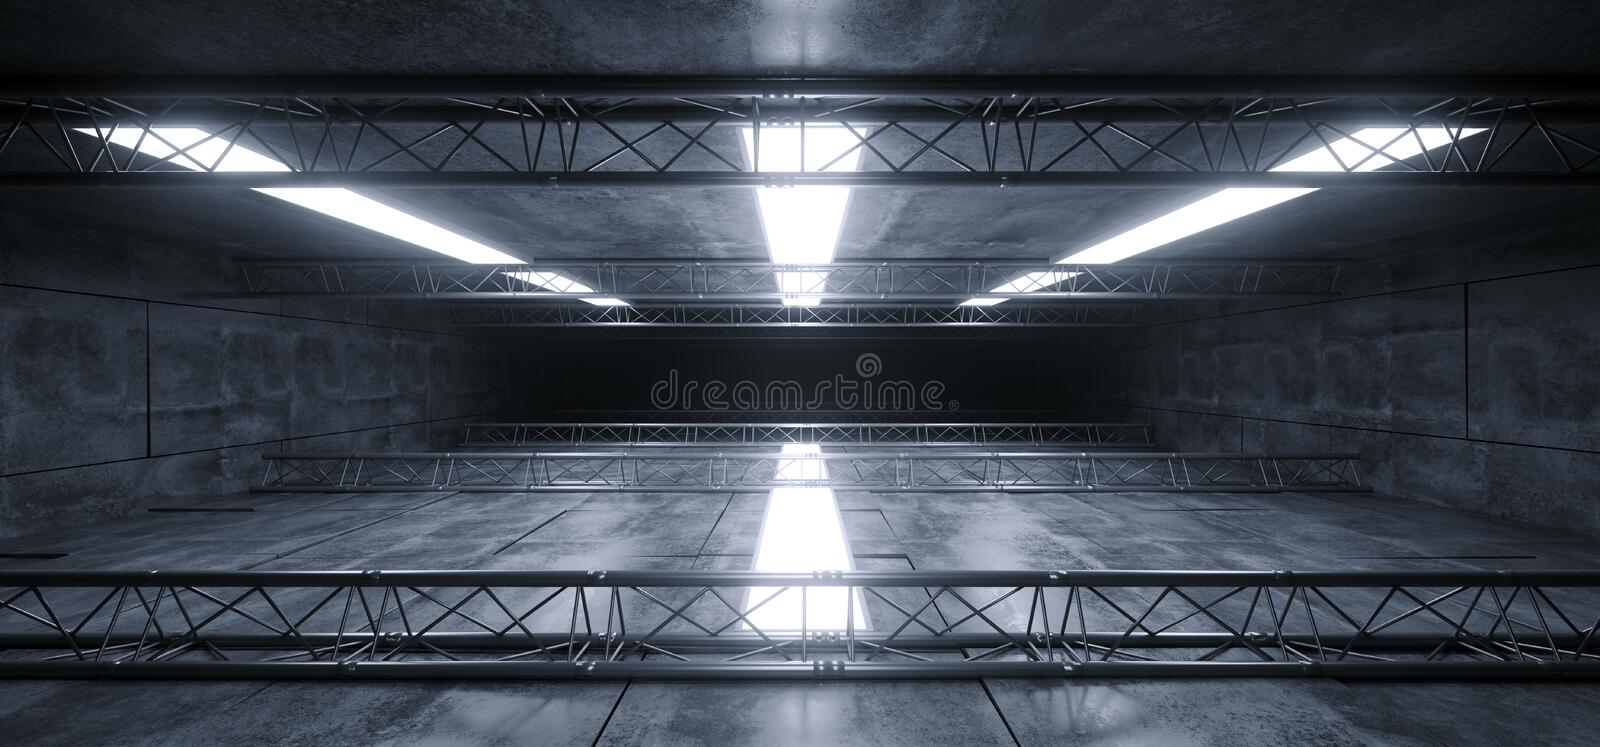 Sci Fi Futuristic Concrete Grunge Reflective Spaceship Led Laser Panel Stage Metal Structure Lights Long Hall Room Corridor Tunnel royalty free illustration